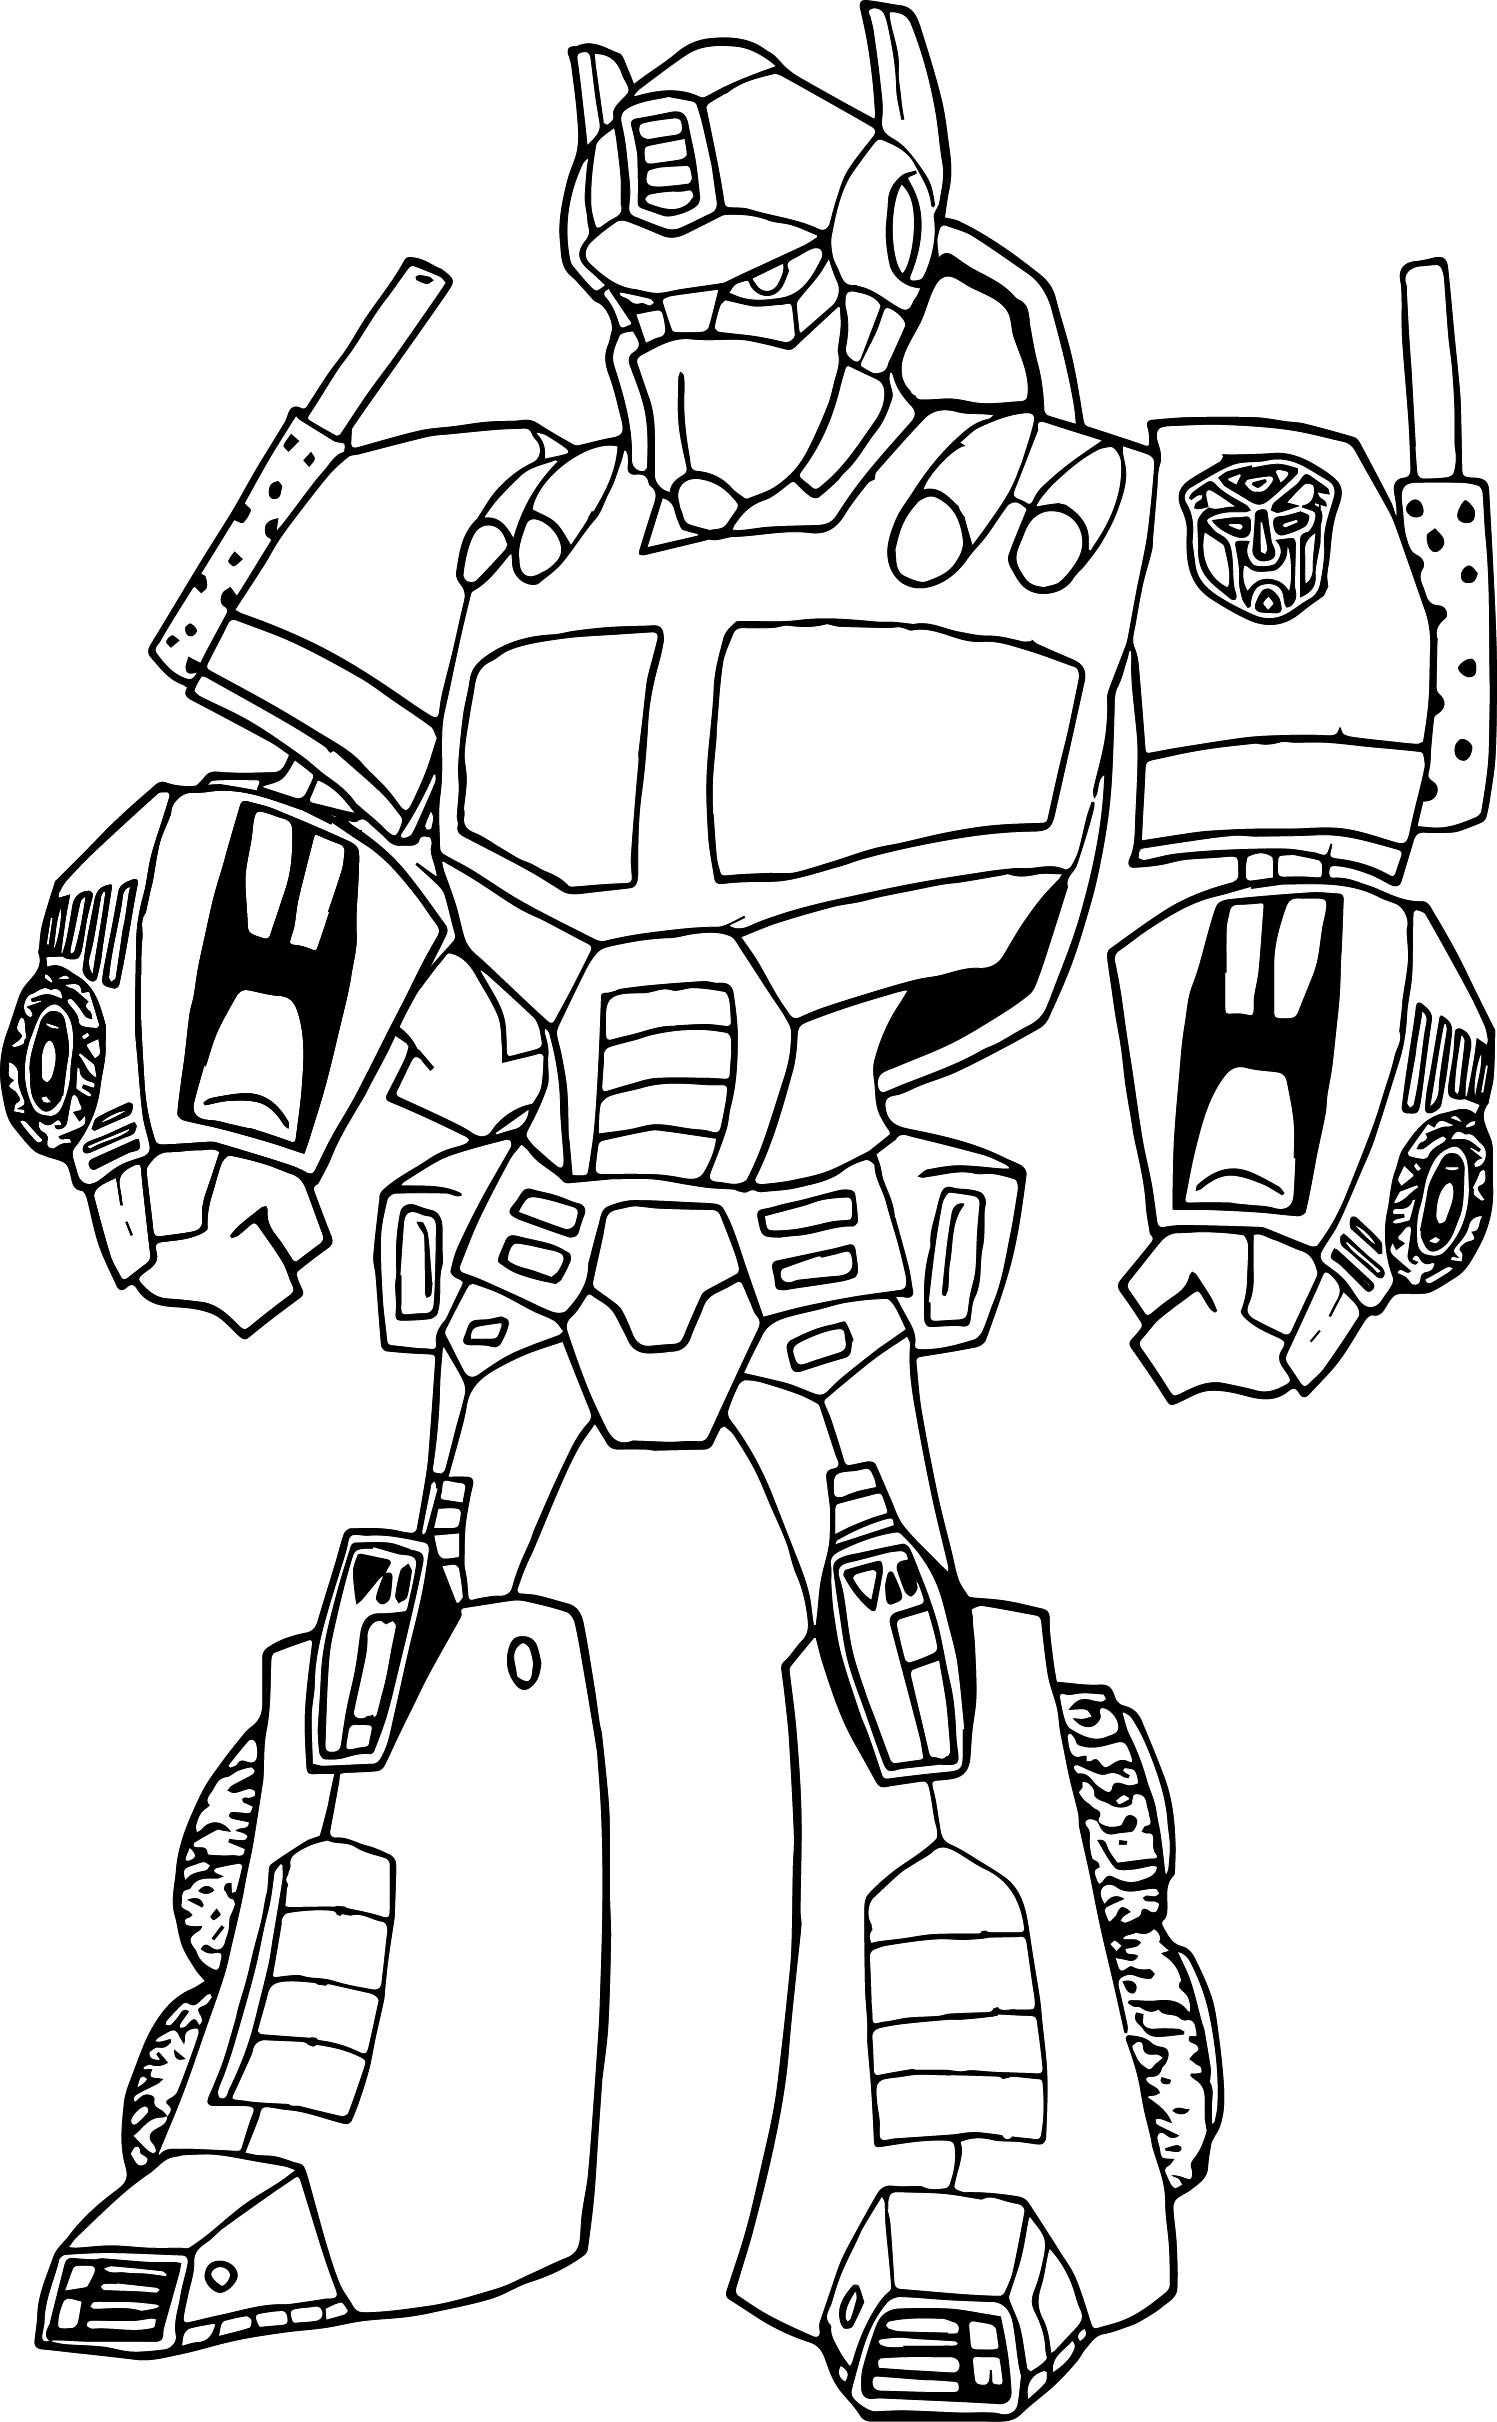 fighting robot coloring pages at getdrawings  free download